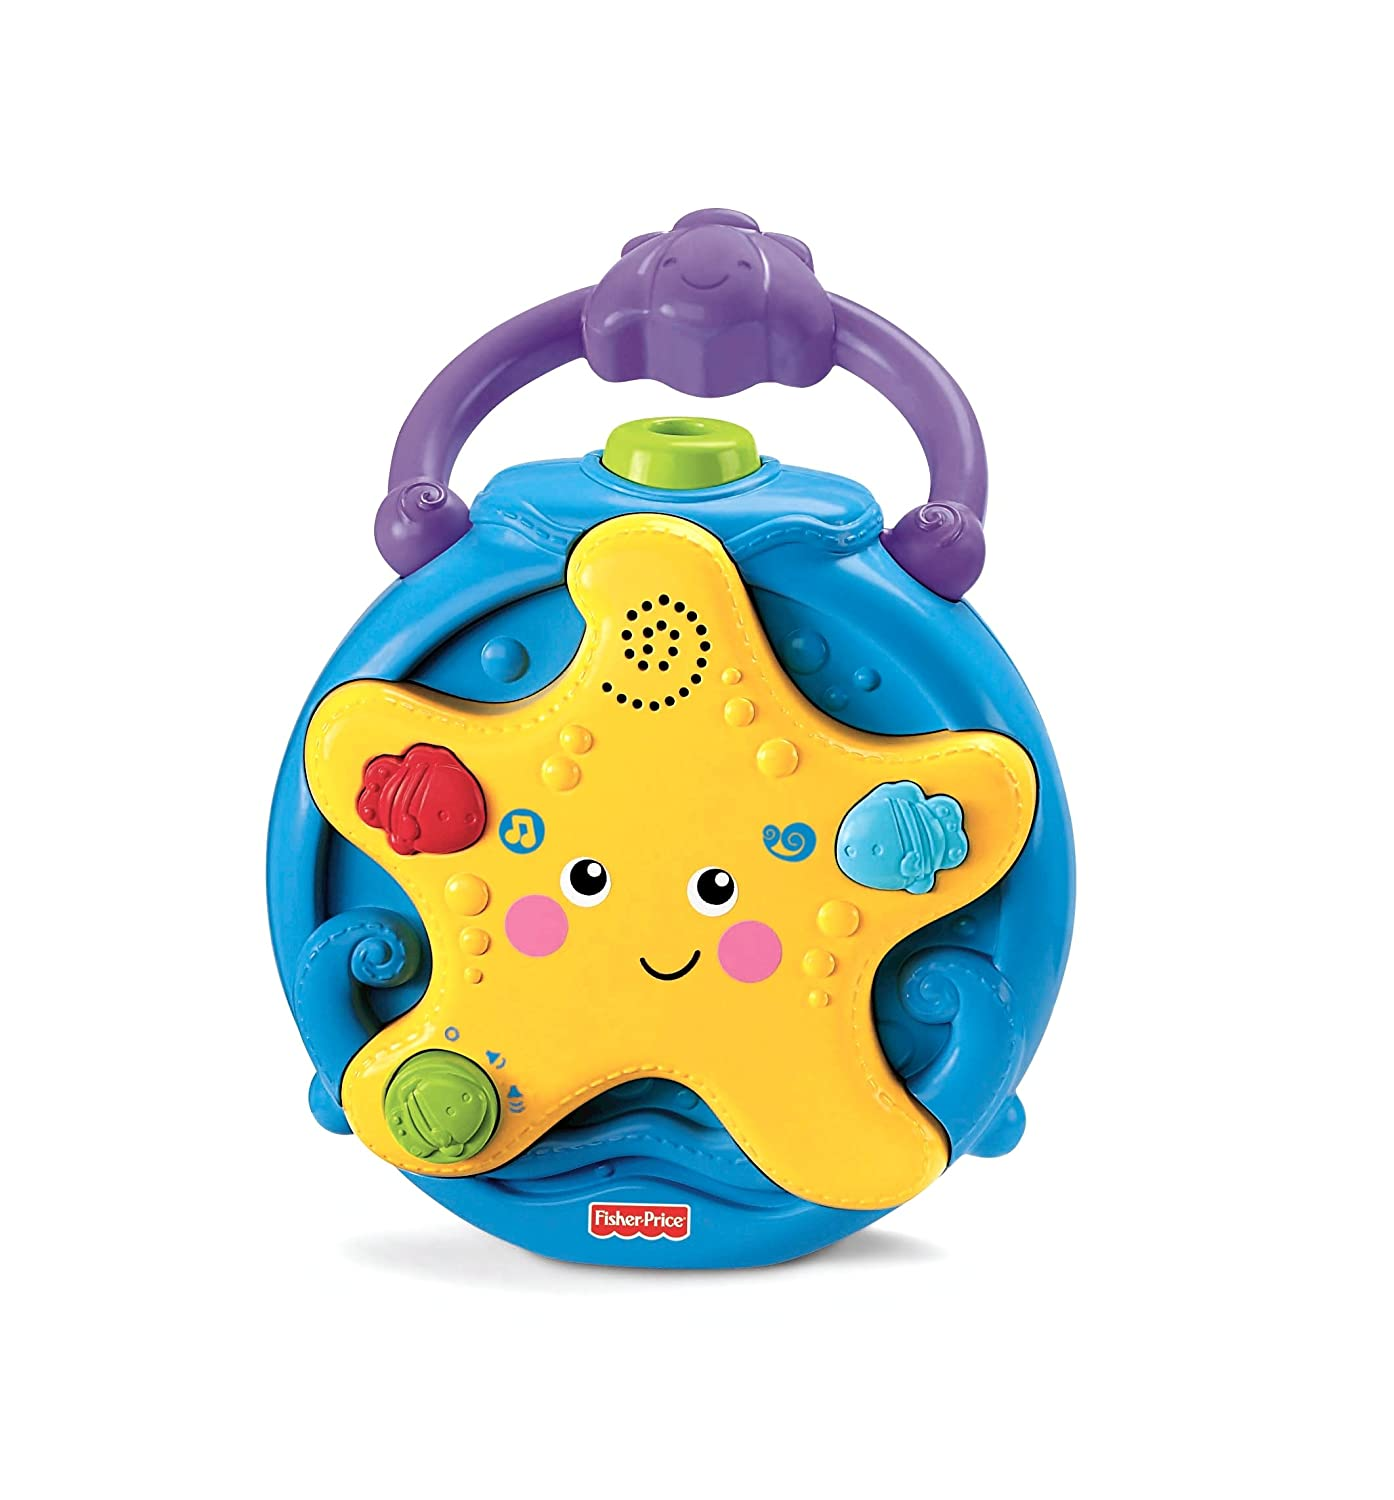 Fisher Price Ocean Wonders Take Along Projector Soother mar-roc P5600